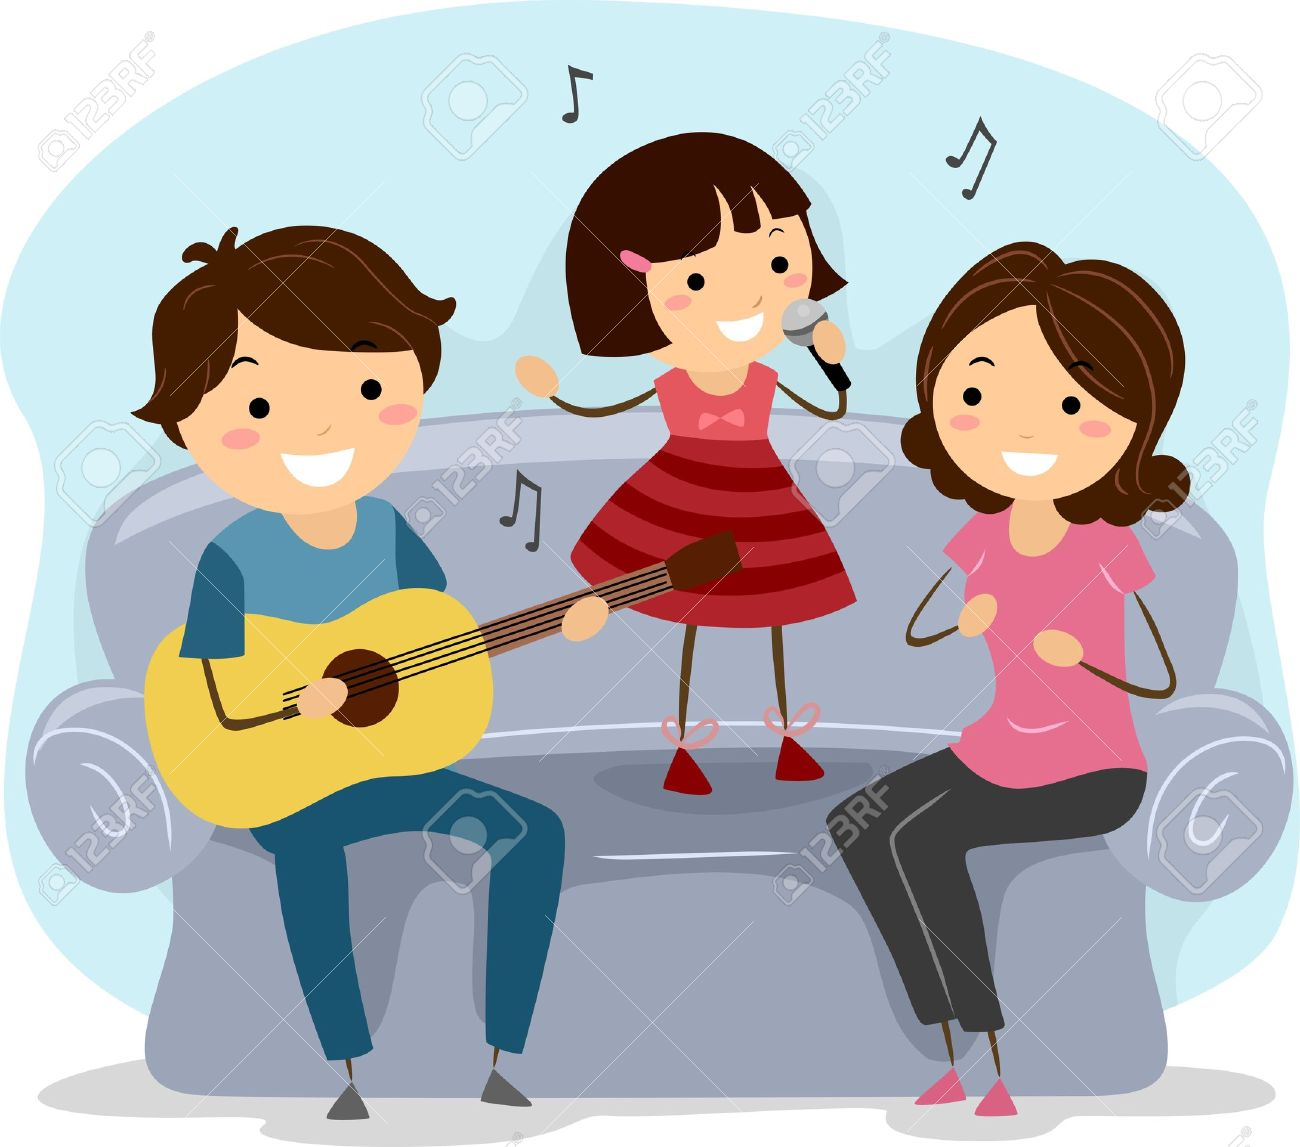 Singing together is a medicine for our heart